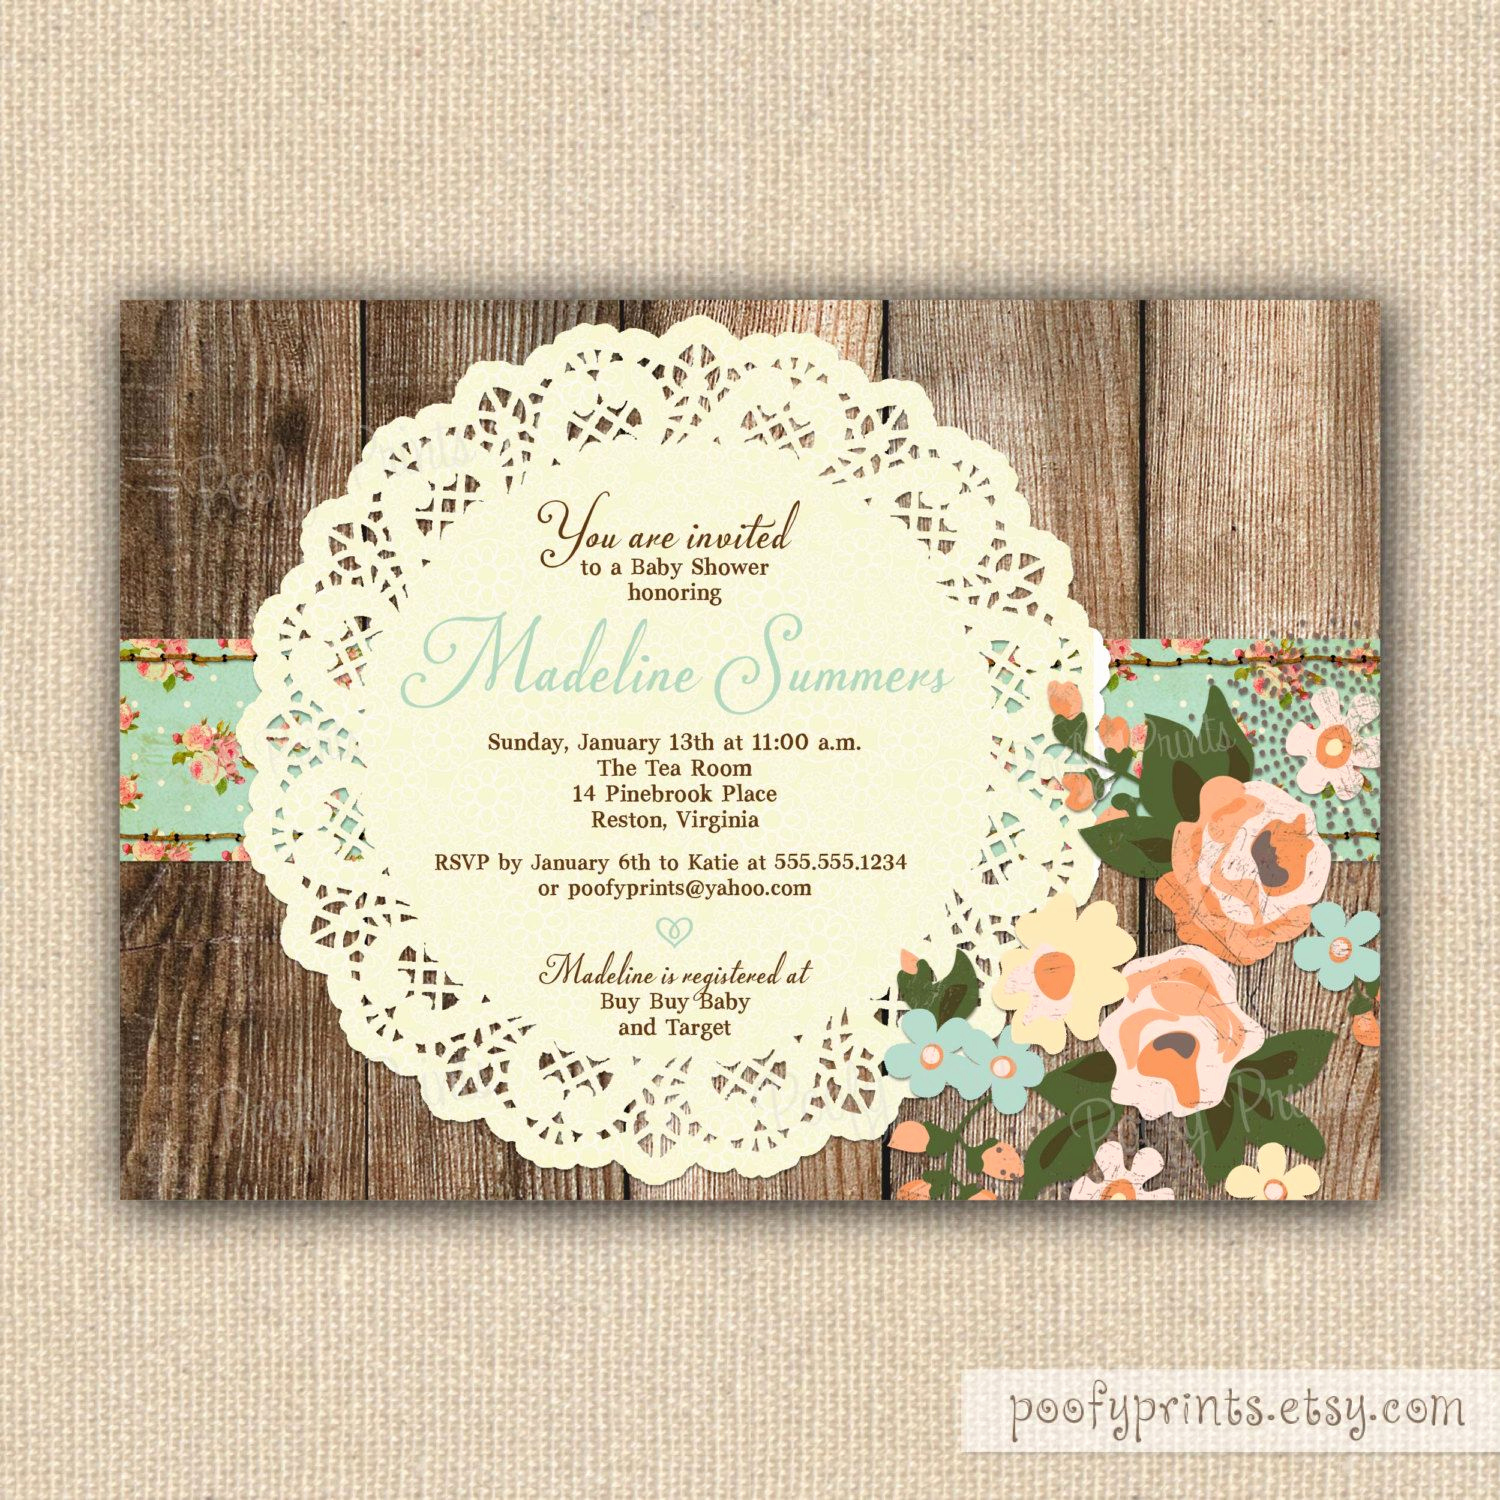 Shabby Chic Invitation Templates Free Luxury Rustic Shabby Chic Baby Shower Invitations Diy Printable